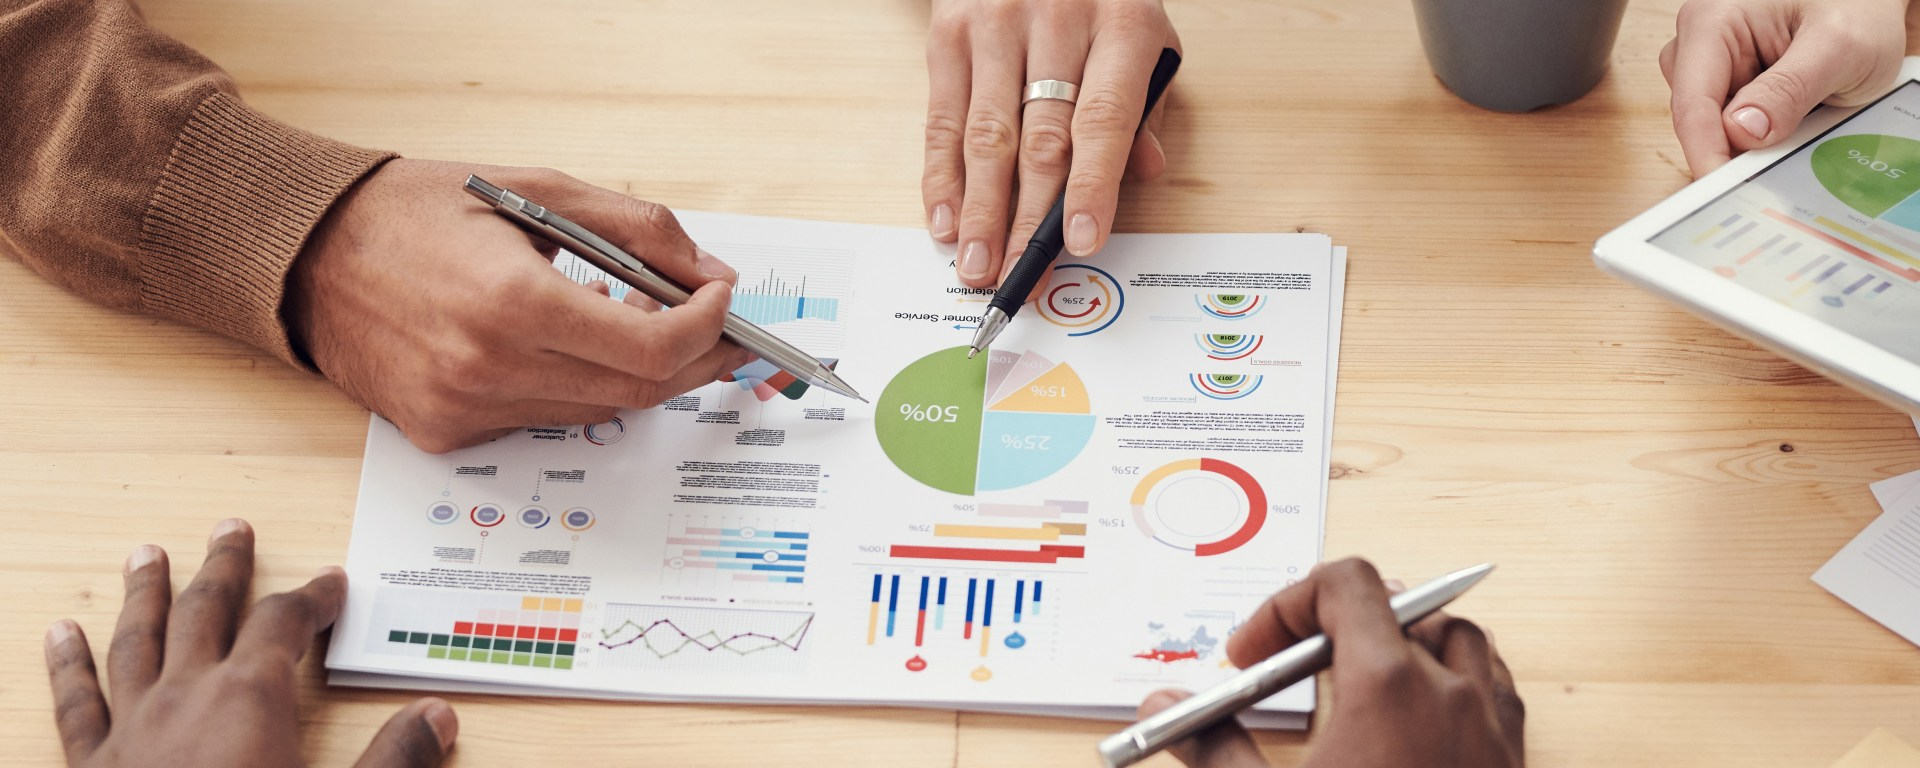 Setting goals for your business in 2020